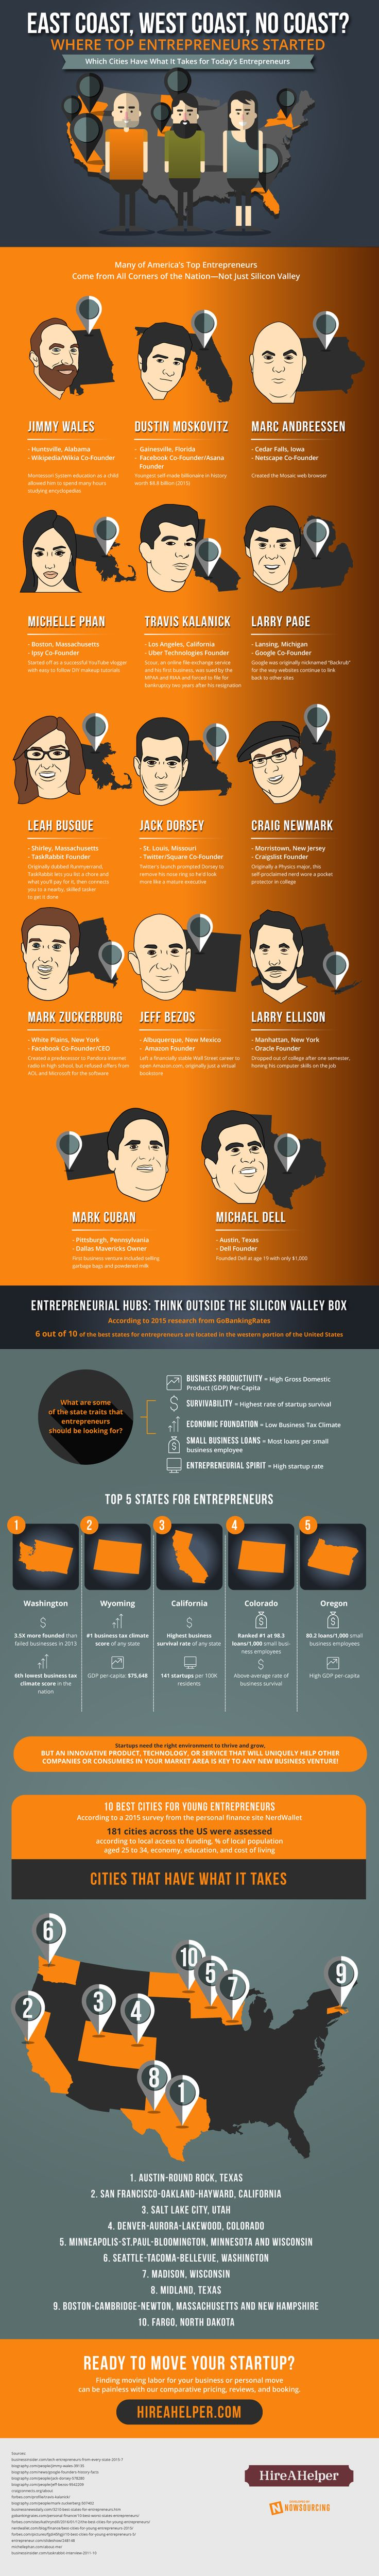 Where Top Entrepreneurs Got Their Start #Infographic #Entrepreneur